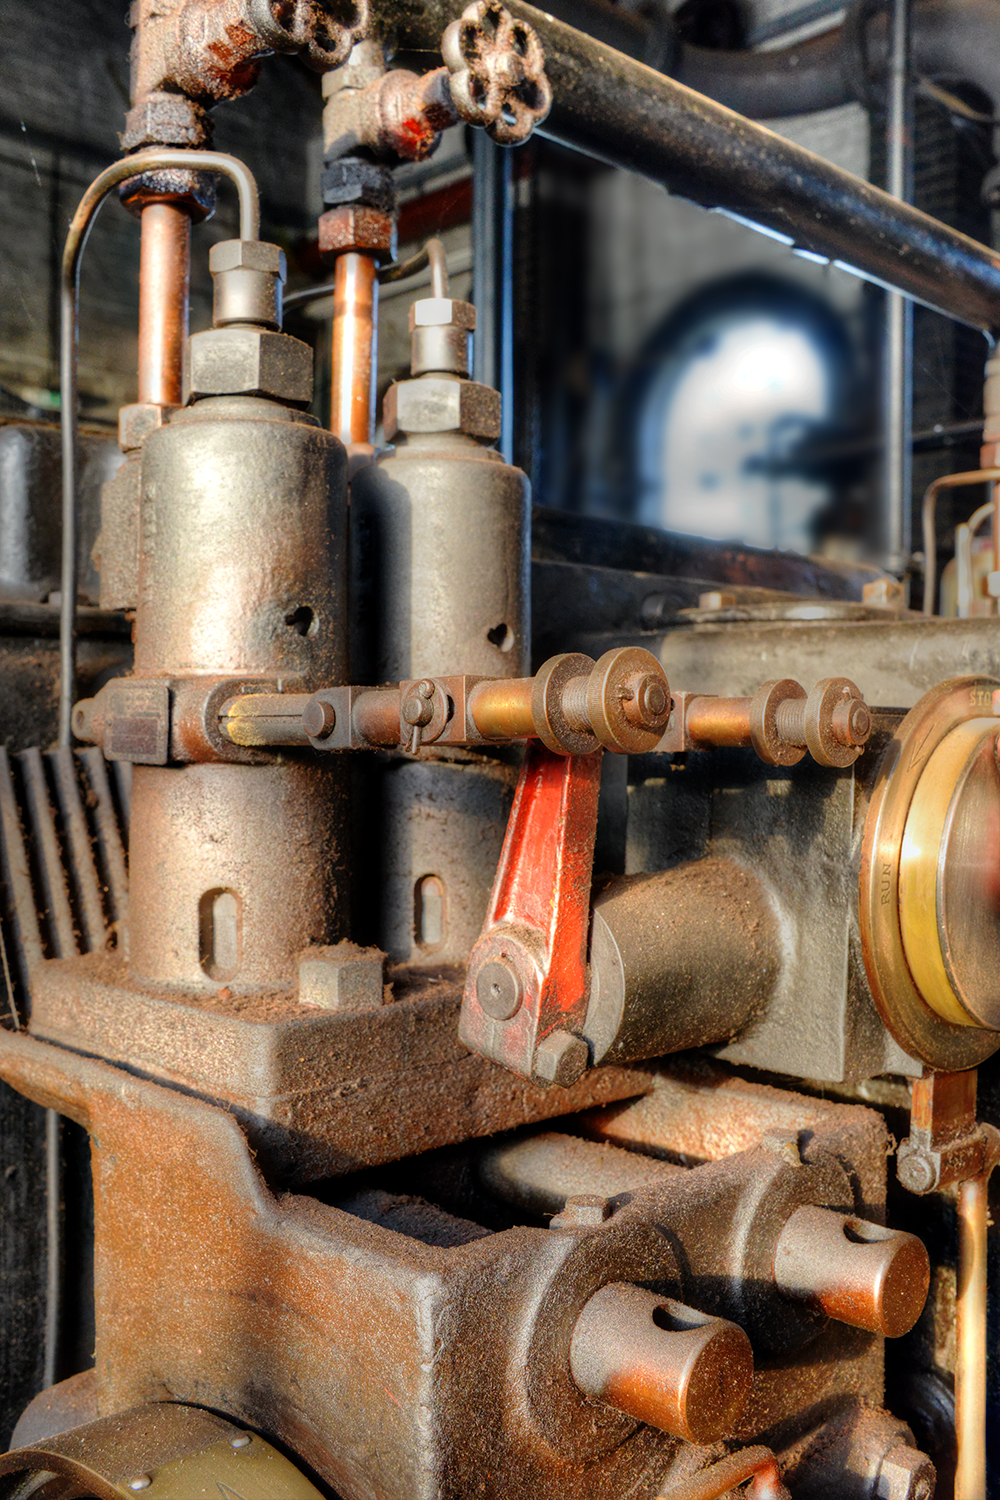 Valve Gear, Mepal Pumping Station by Roger Newark